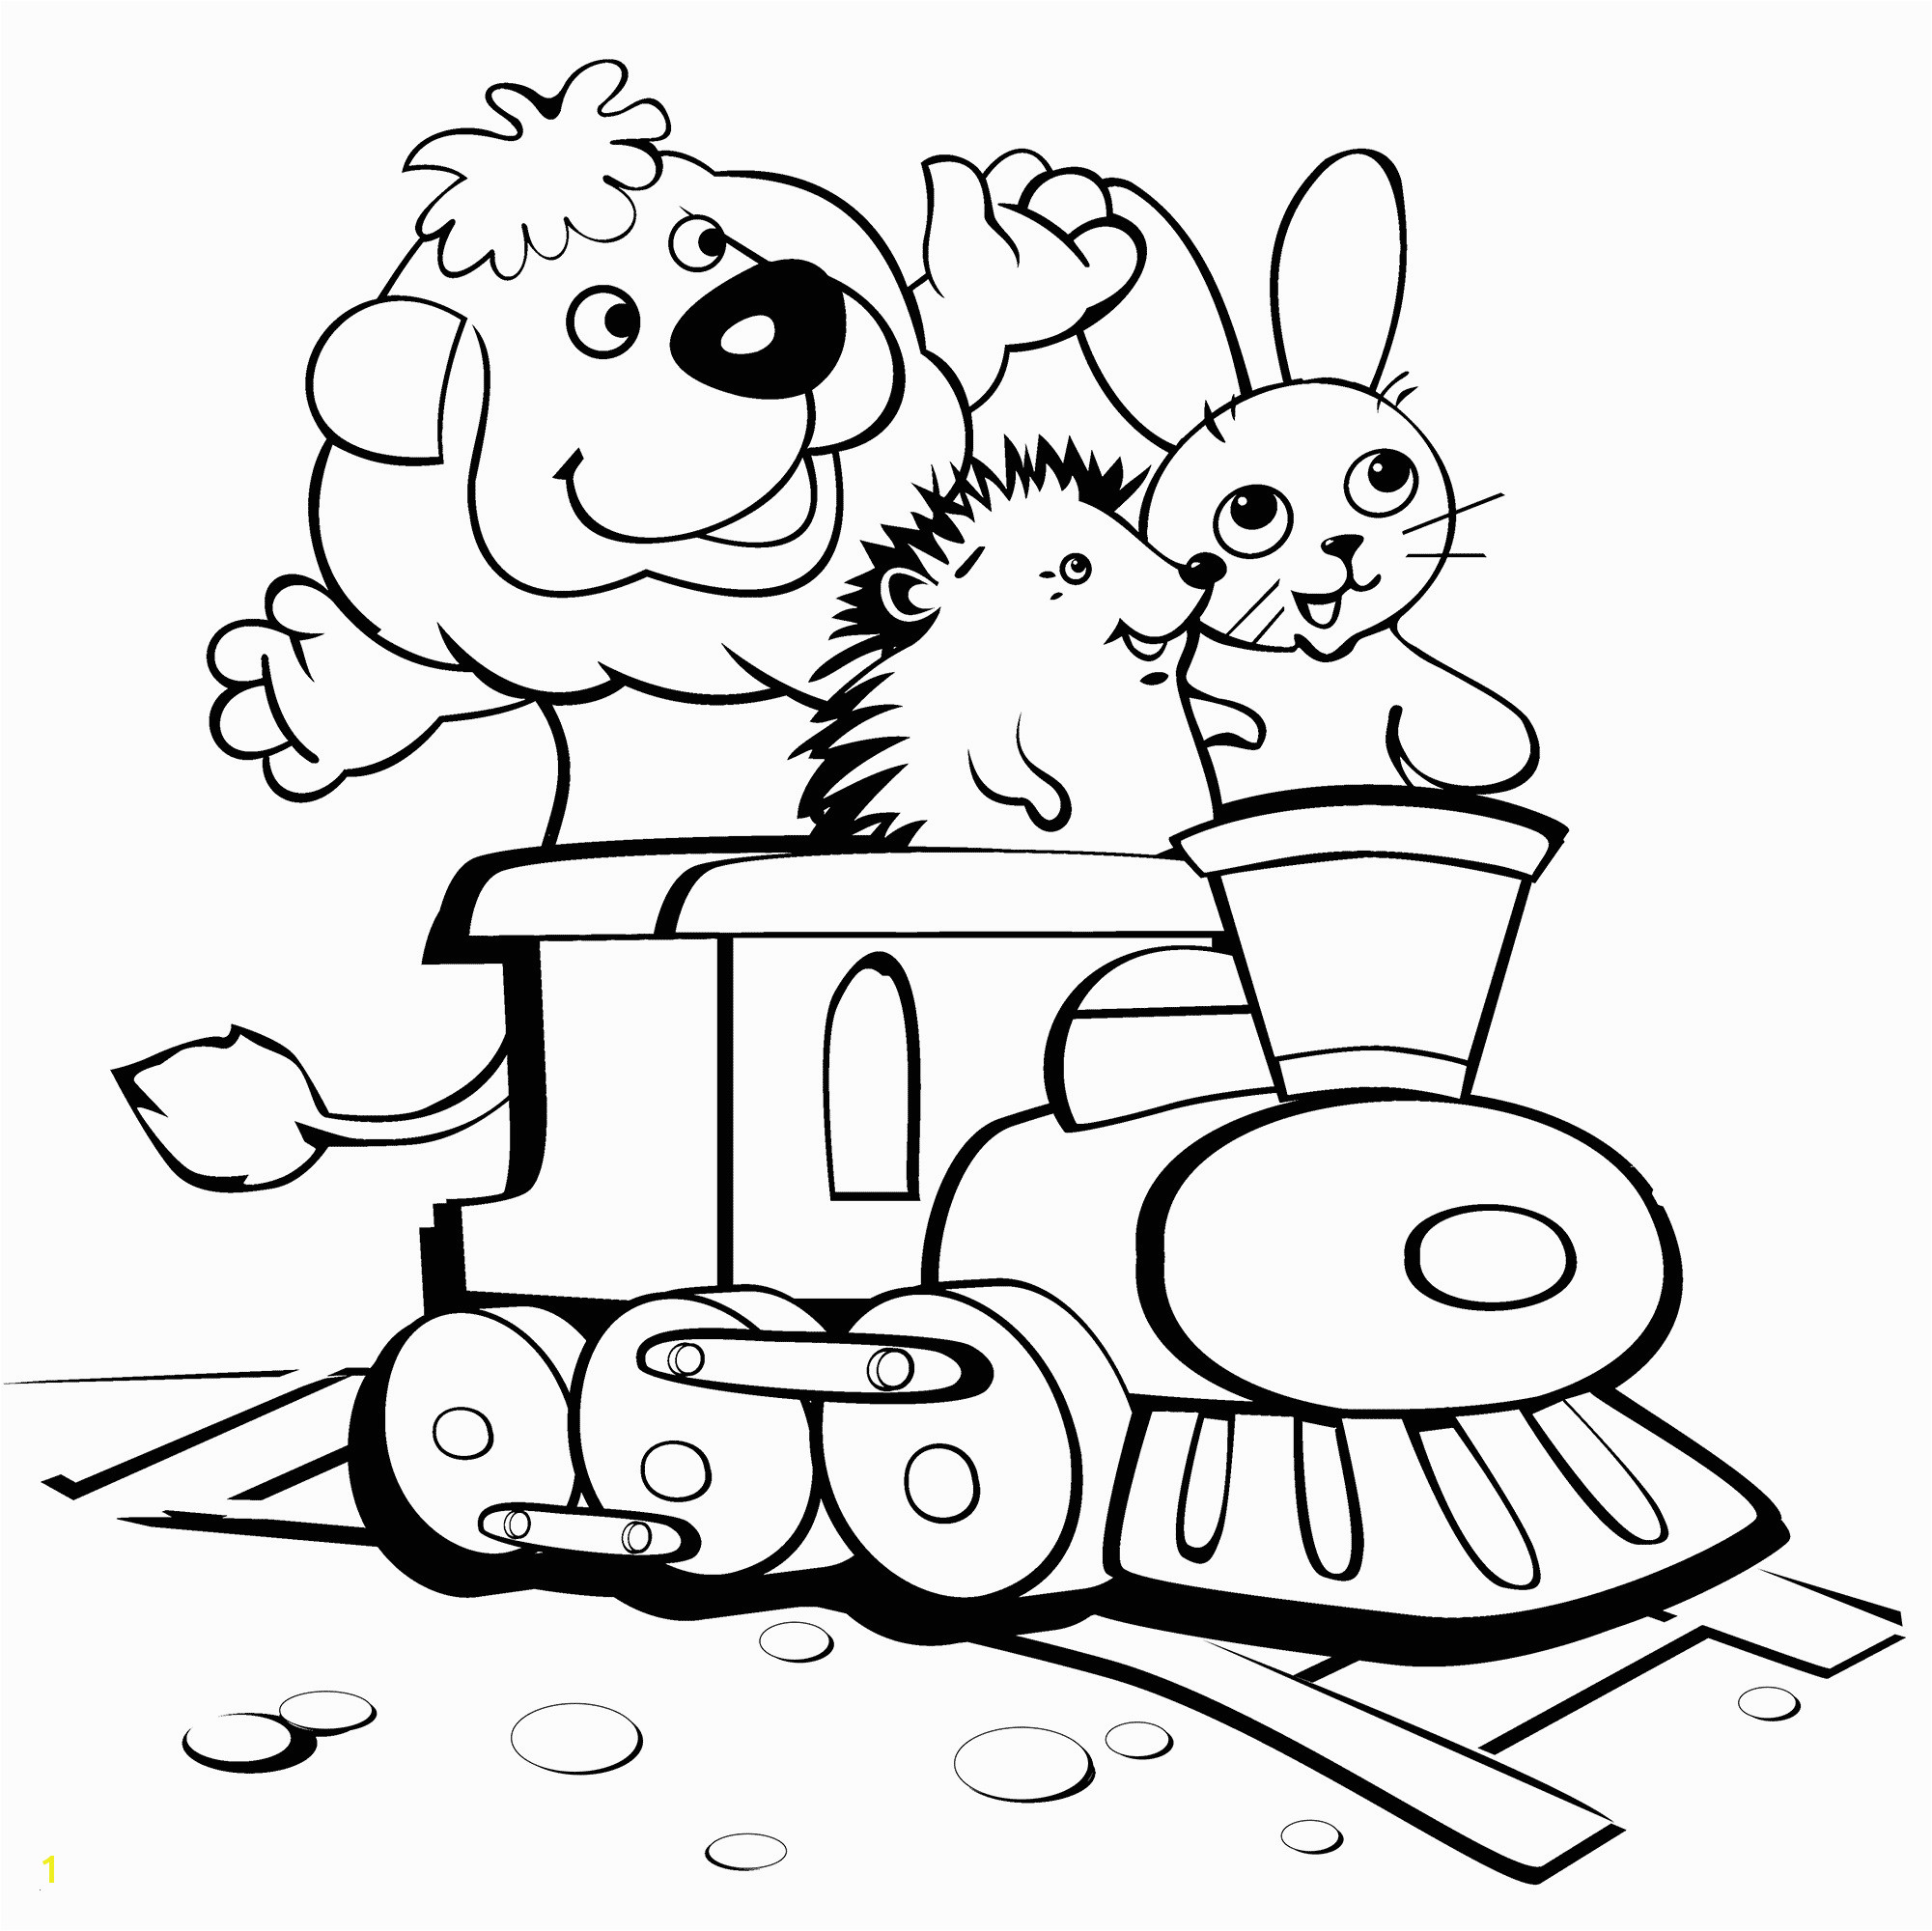 The Boxcar Children Coloring Pages Amazing Train Coloring Pages for toddlers Verikira